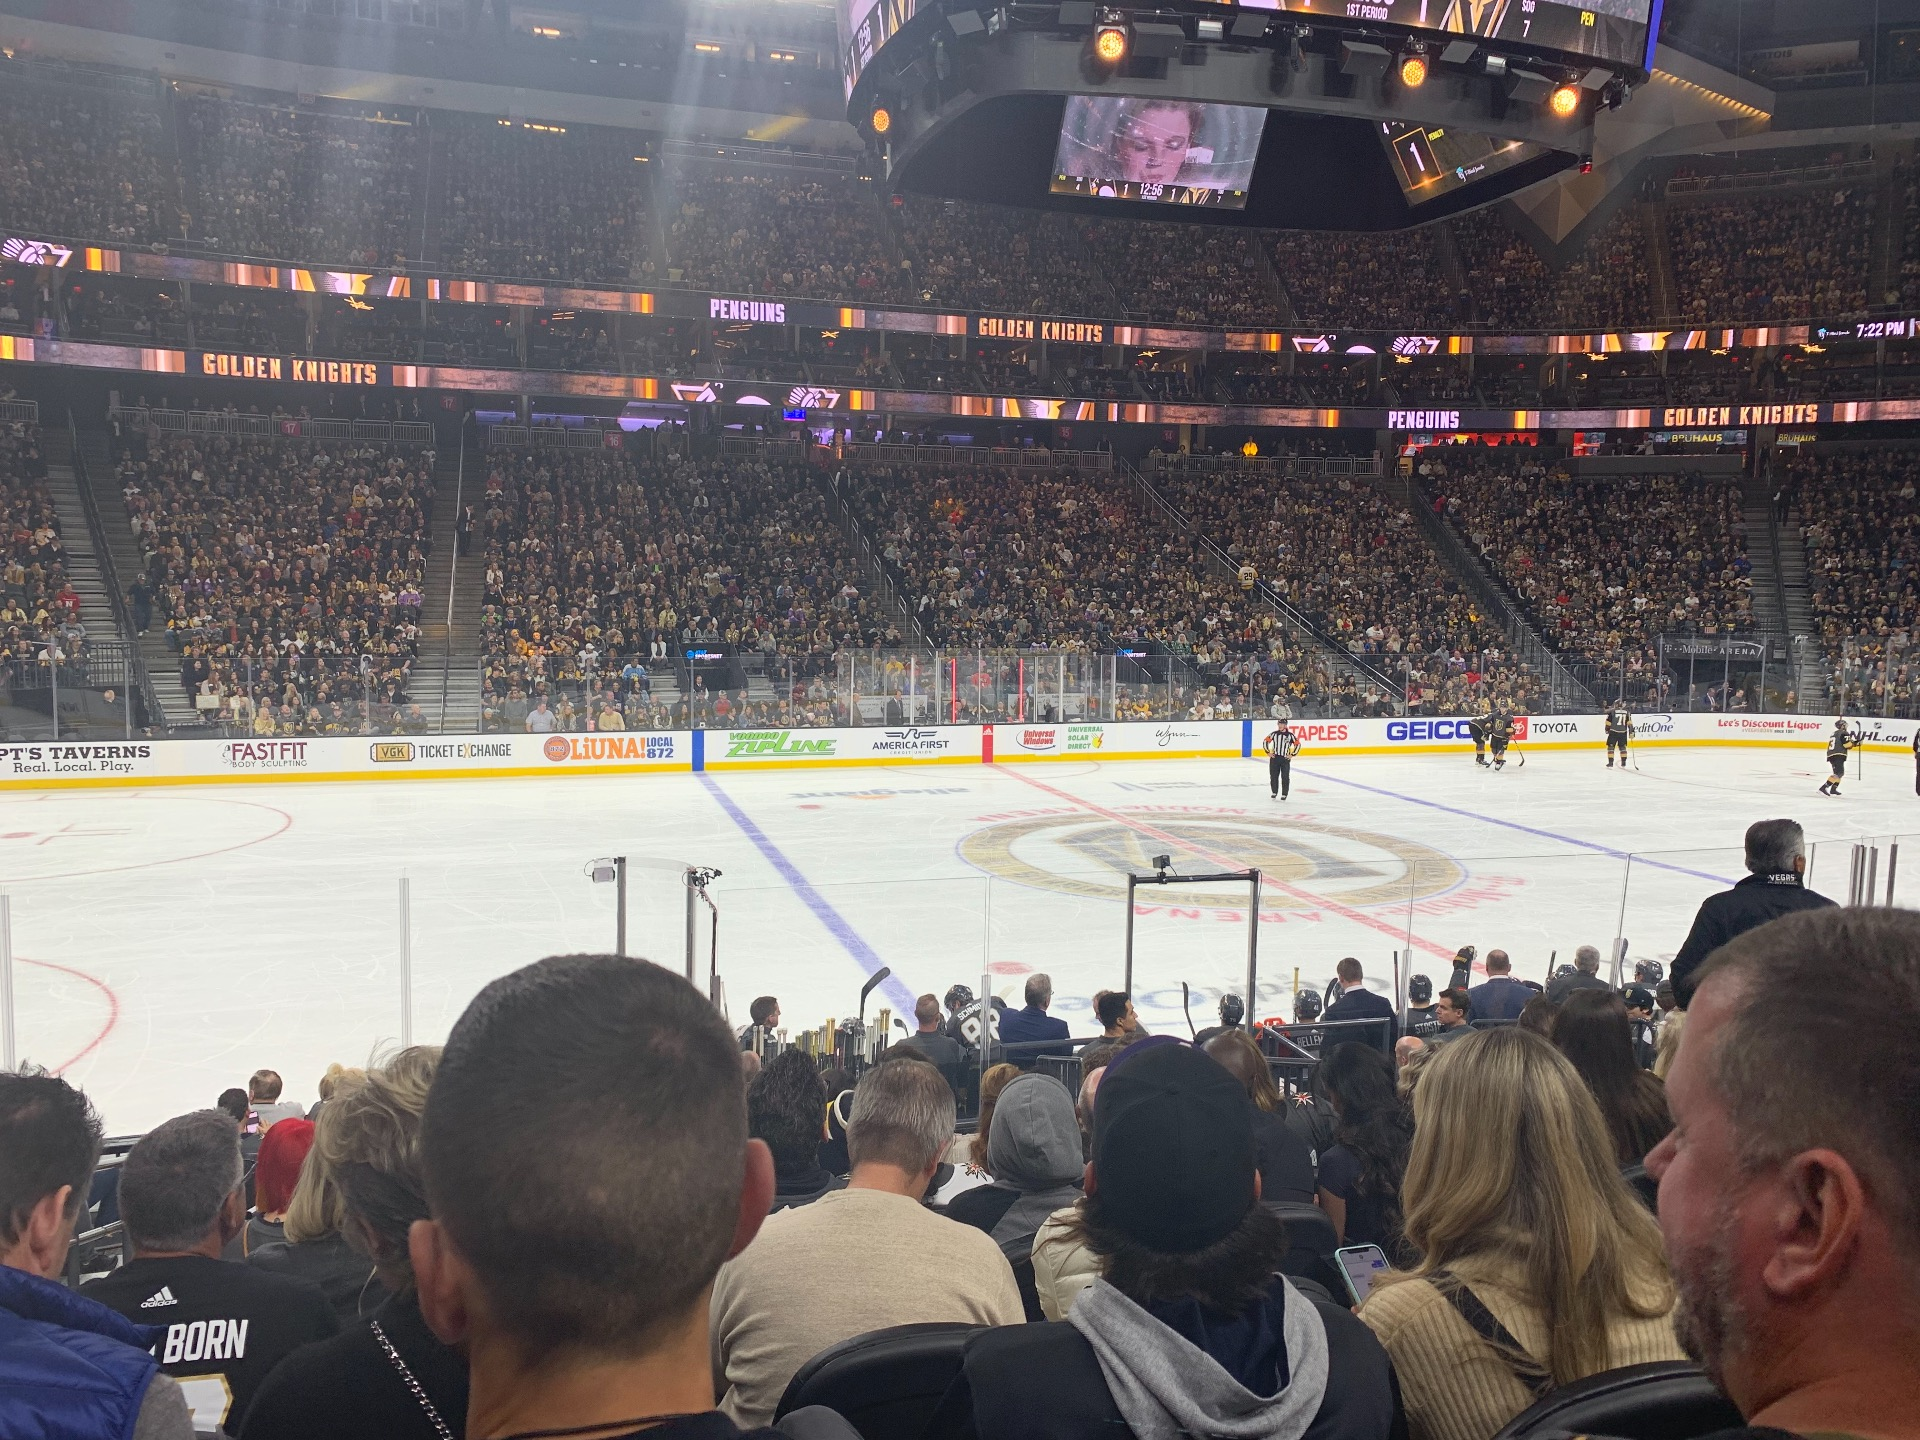 T-Mobile Arena Section 5 Row J Seat 2